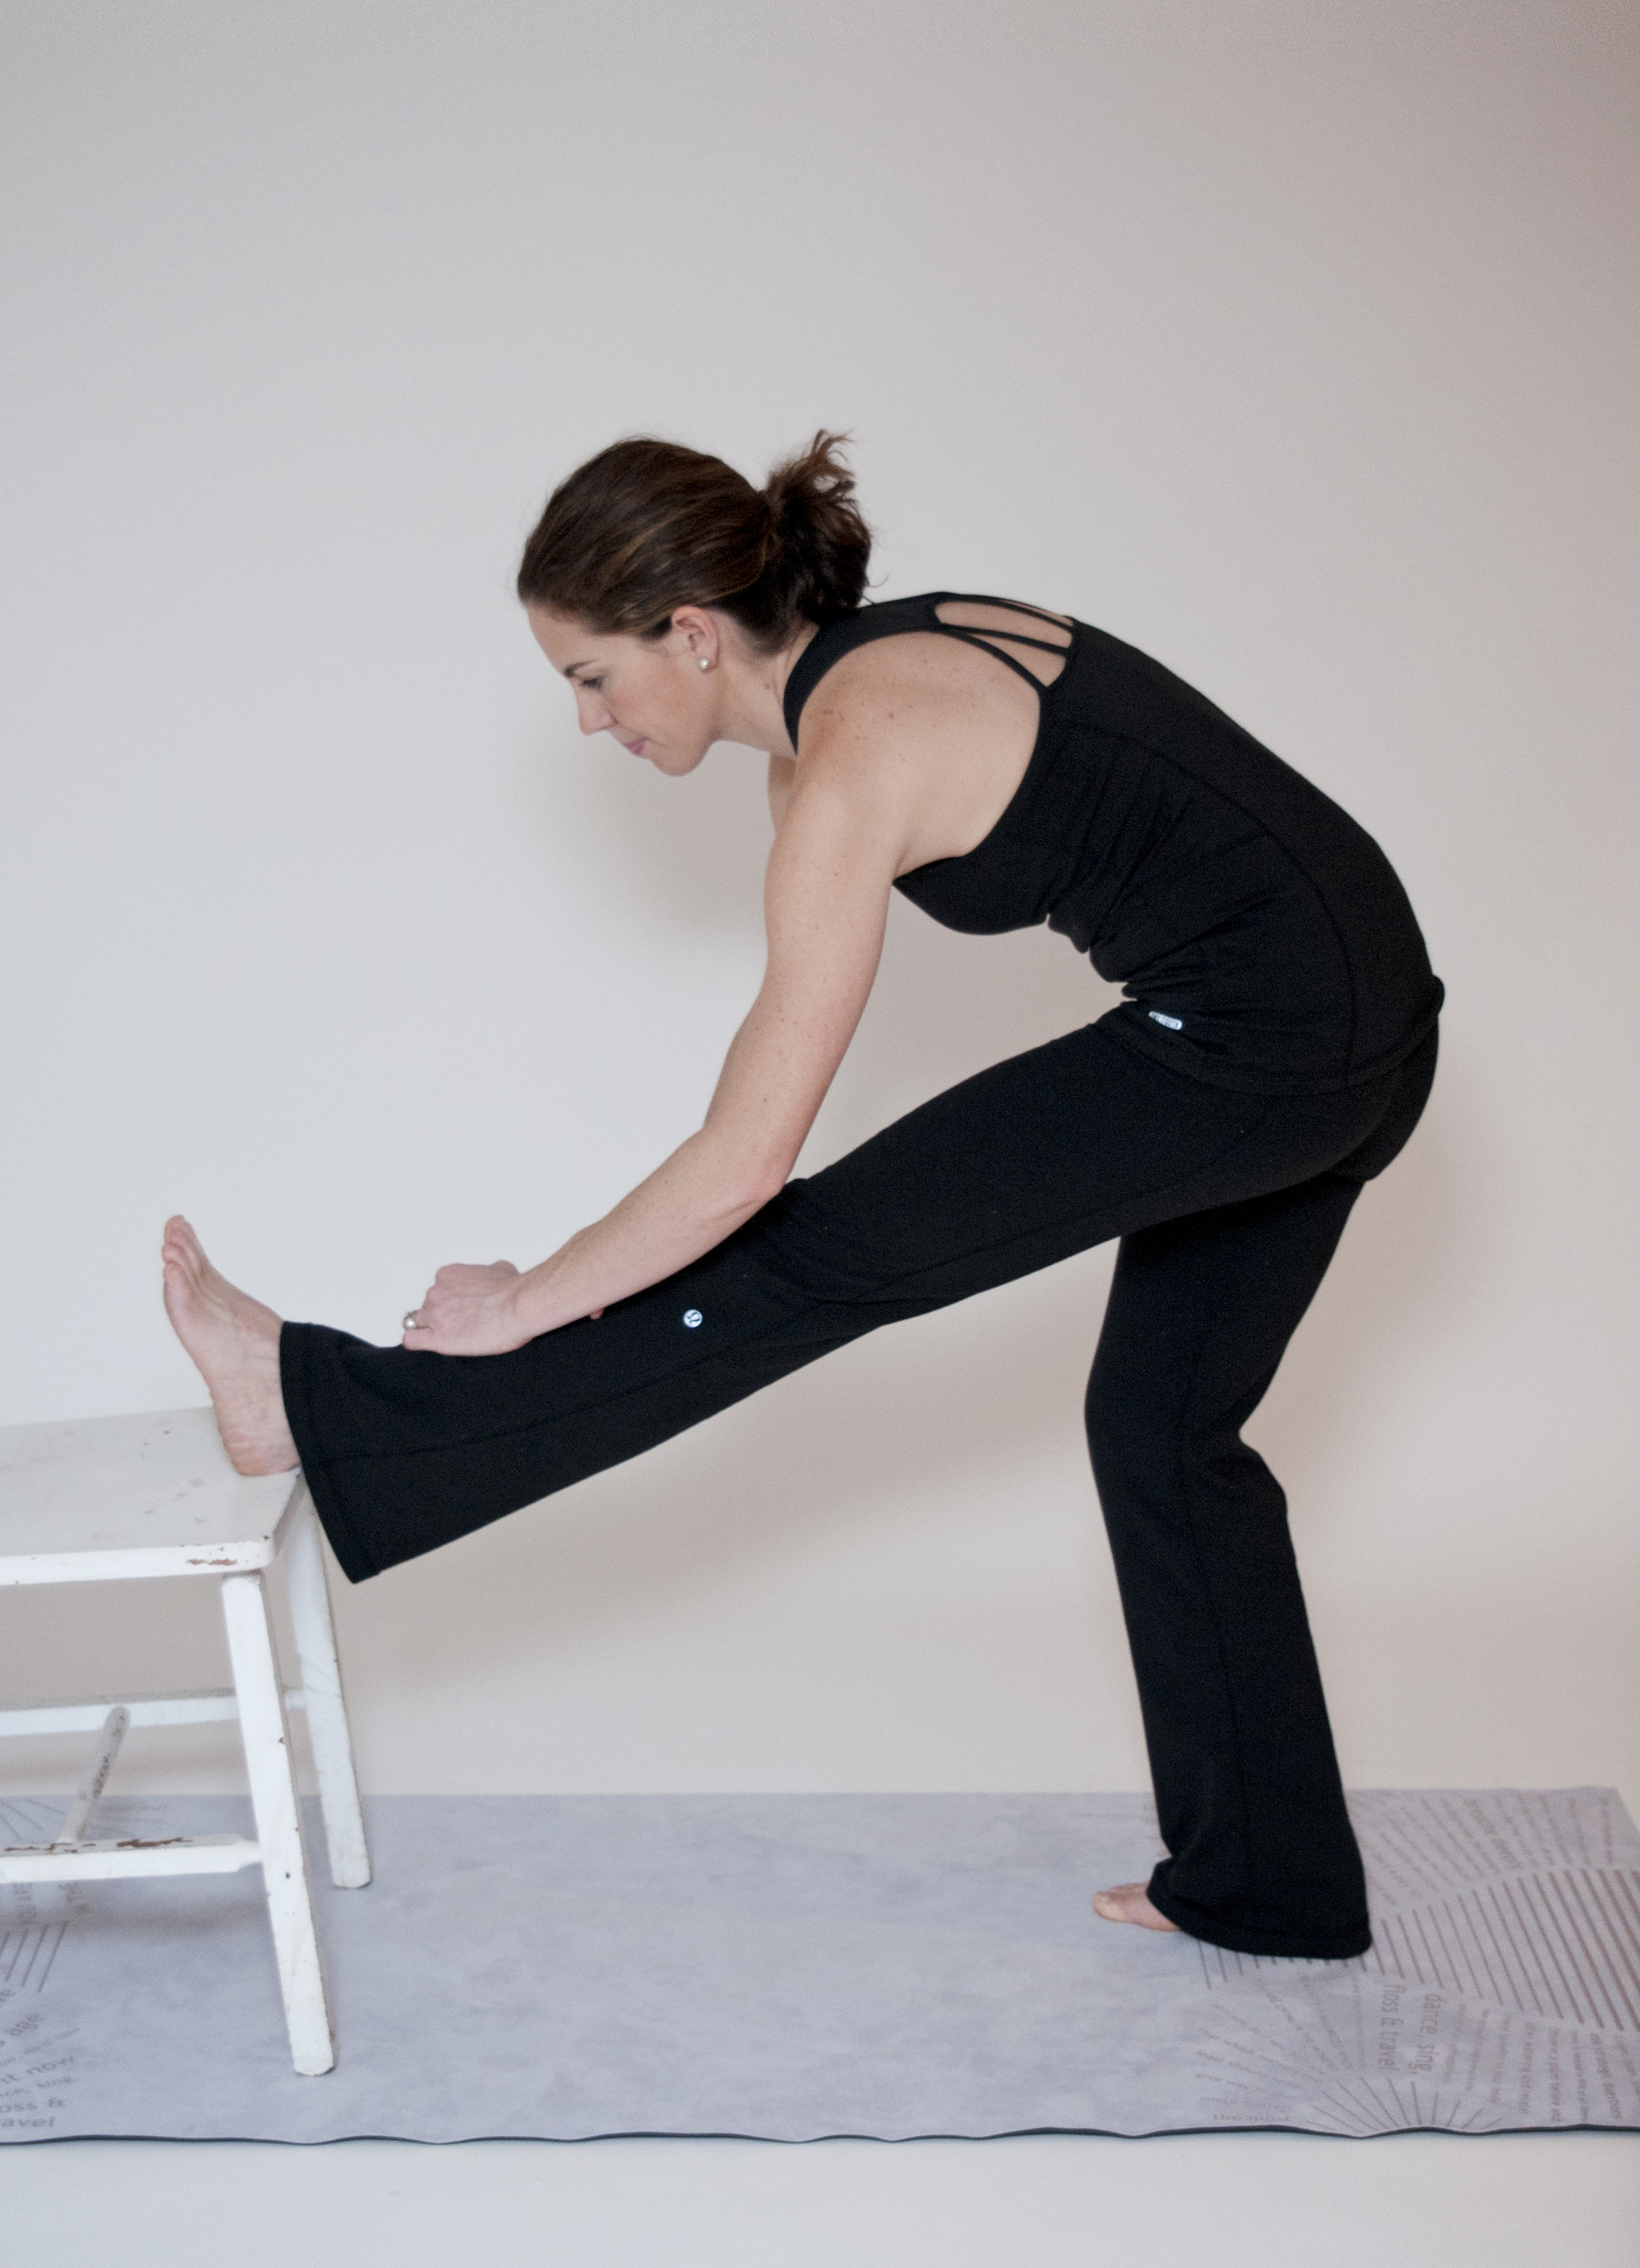 Standing Hamstring (Modification: turn toes inwards and bend knee slightly for an outer hamstring focus)